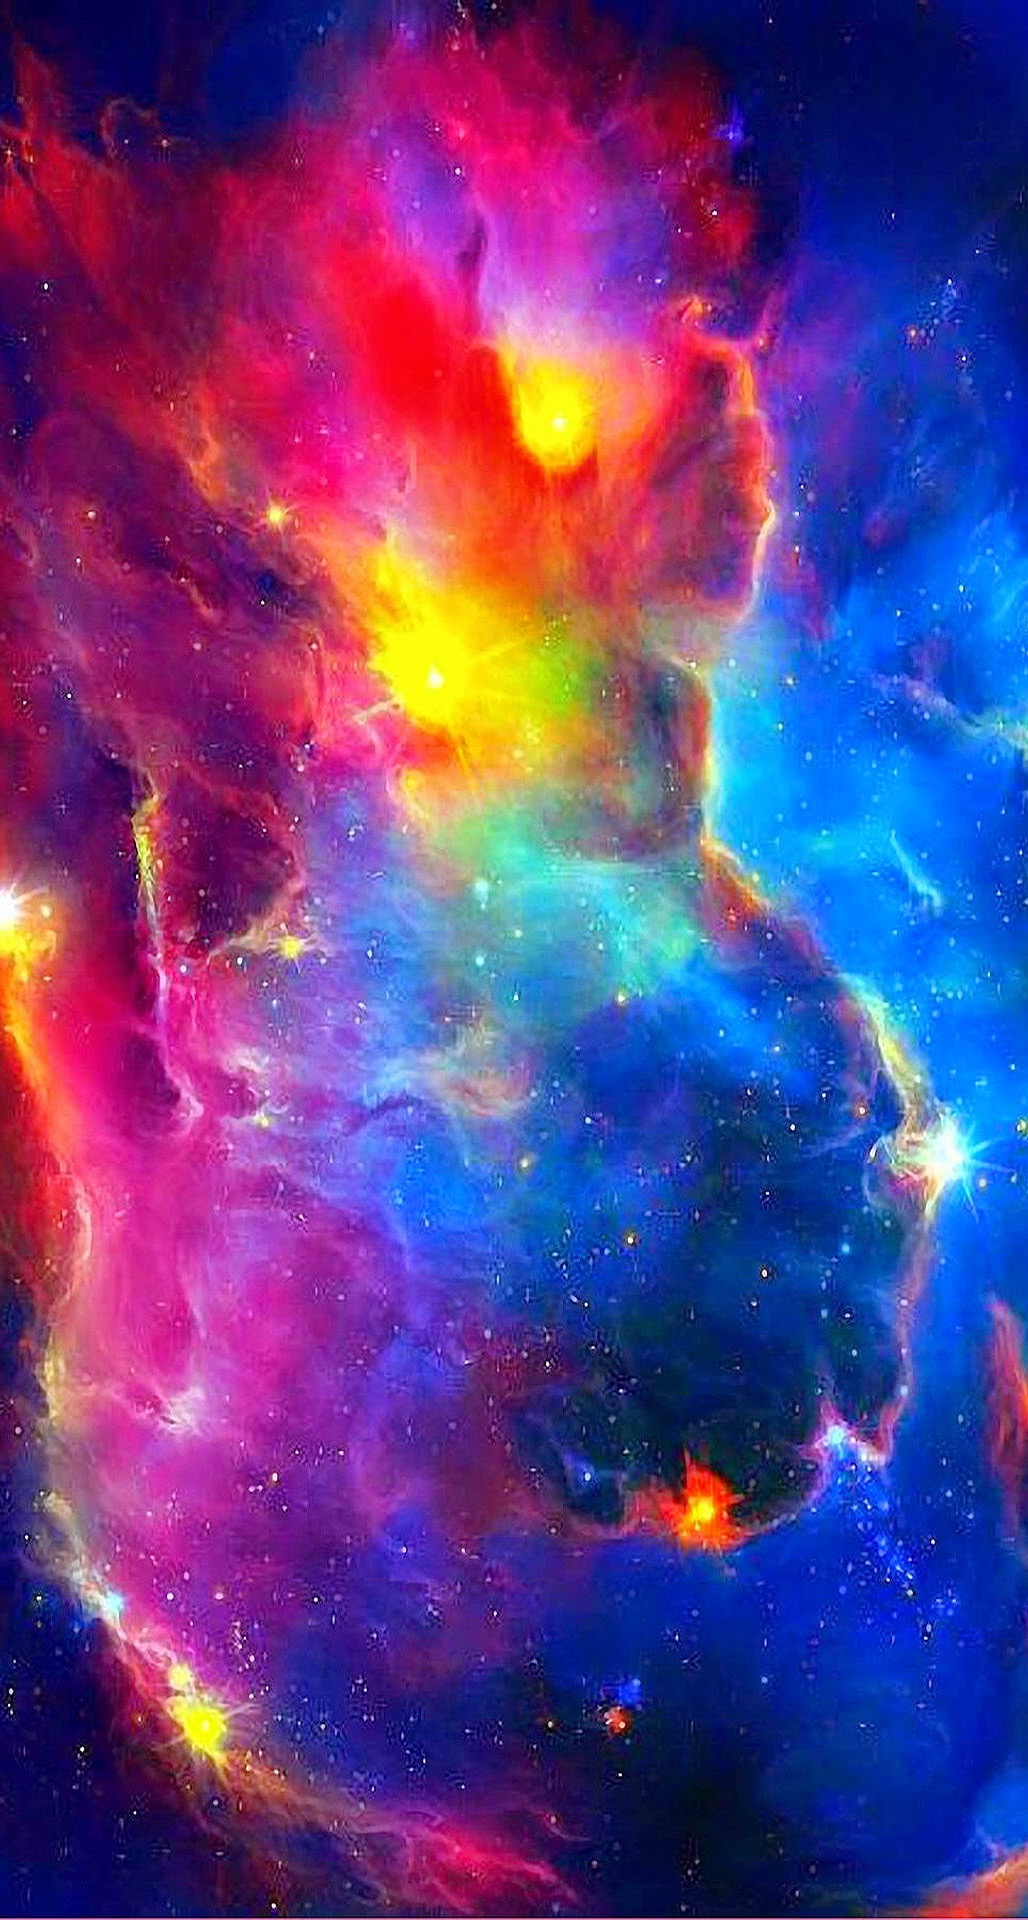 50+ space iphone wallpaper